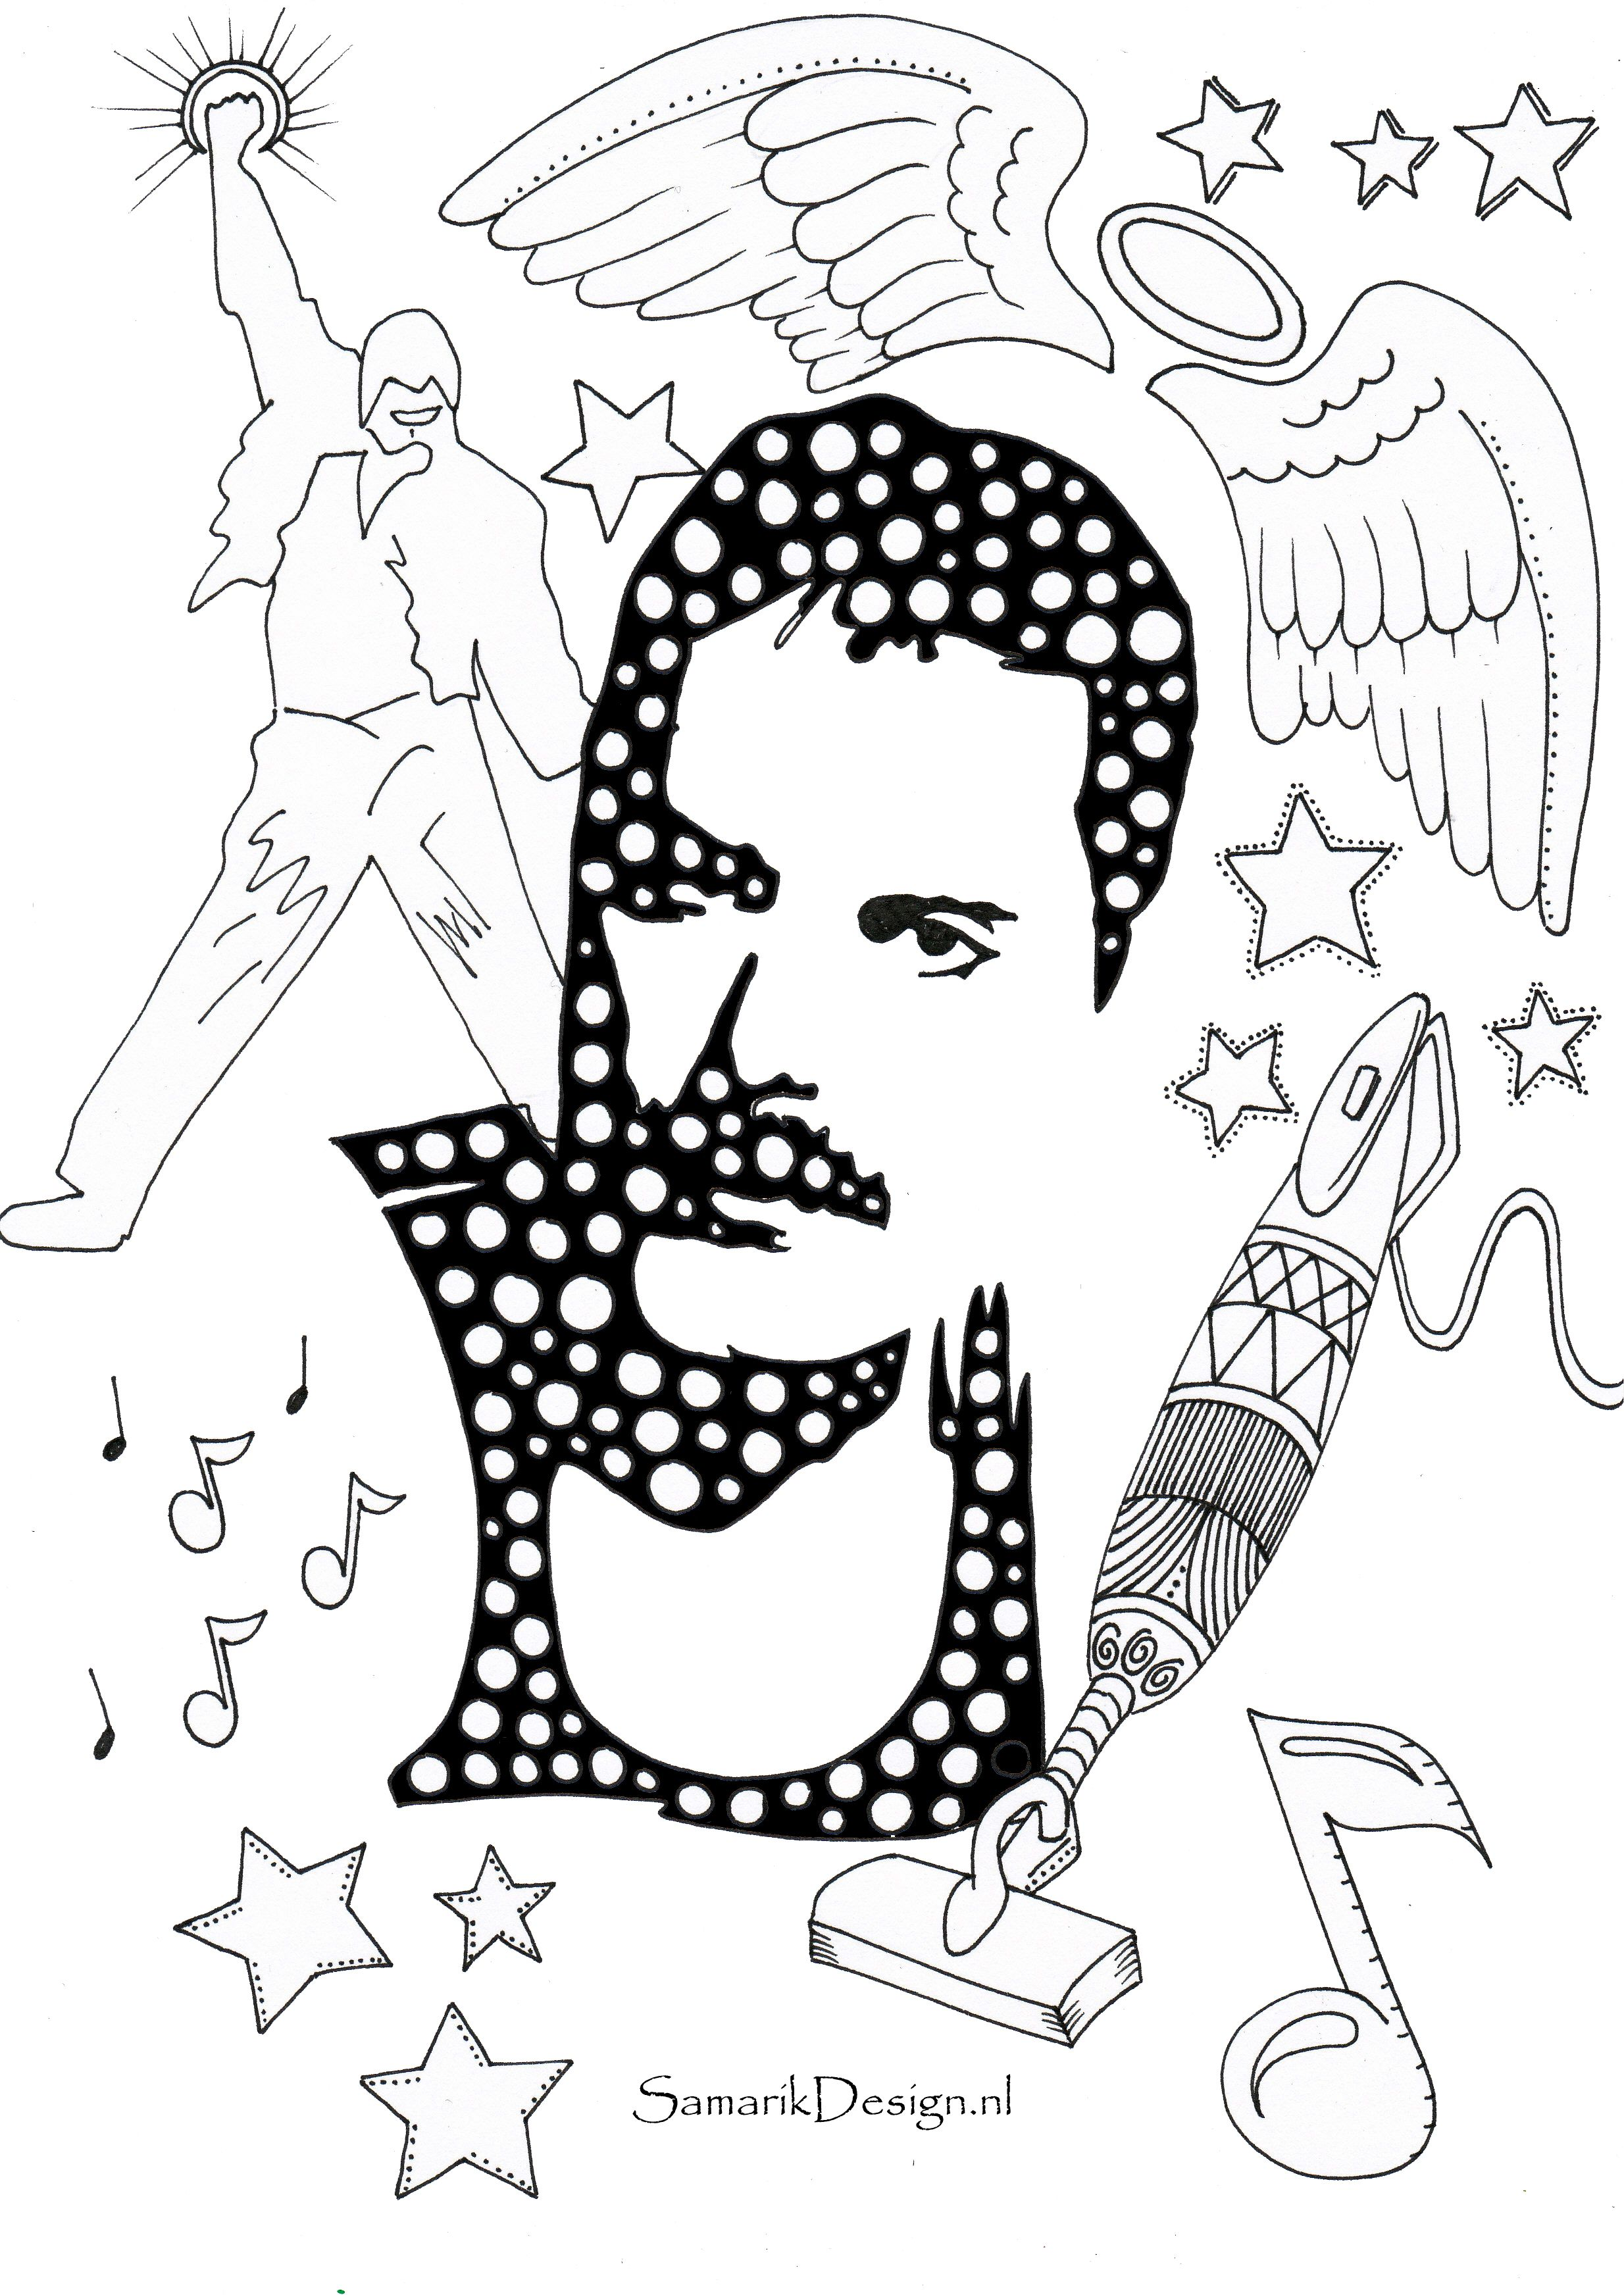 Freddie Mercury Famous People Coloring Pages Unicorn Coloring